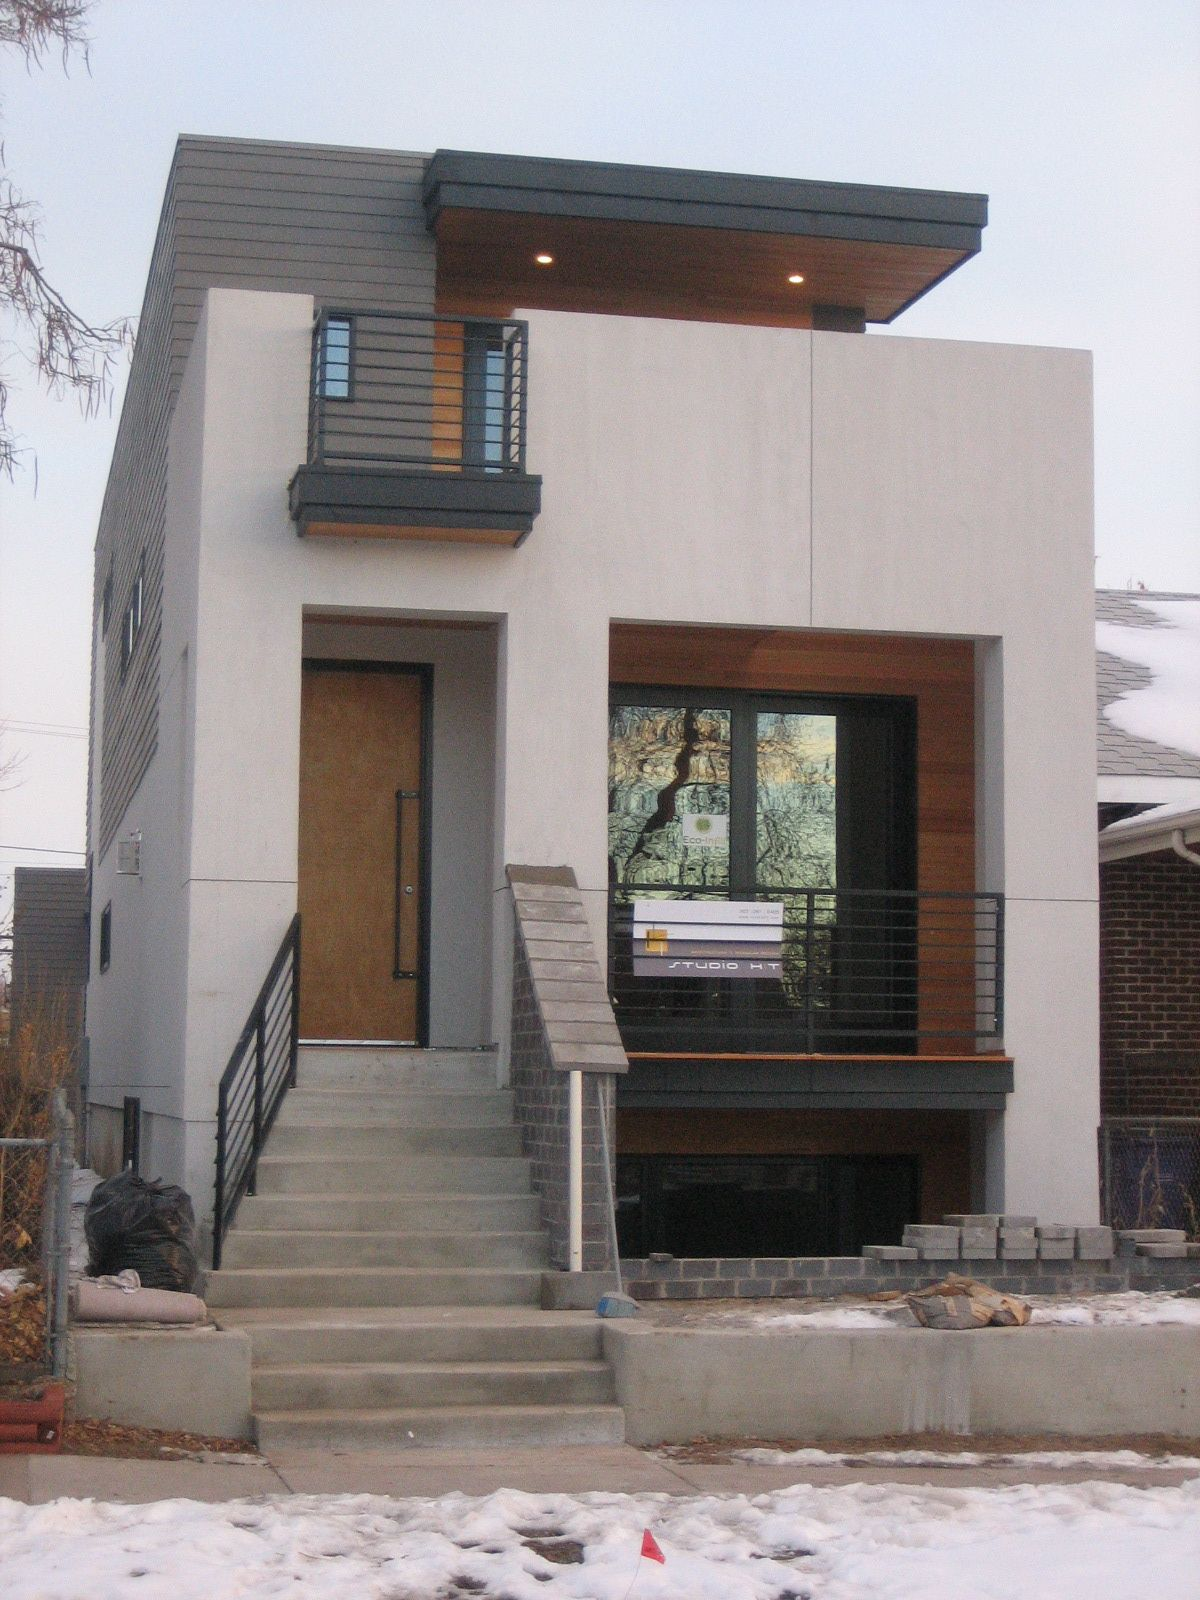 Awesome minimalist prefabricated small houses with stairs entry areas also balcony decors as modern home exterior designs ideas rh br pinterest